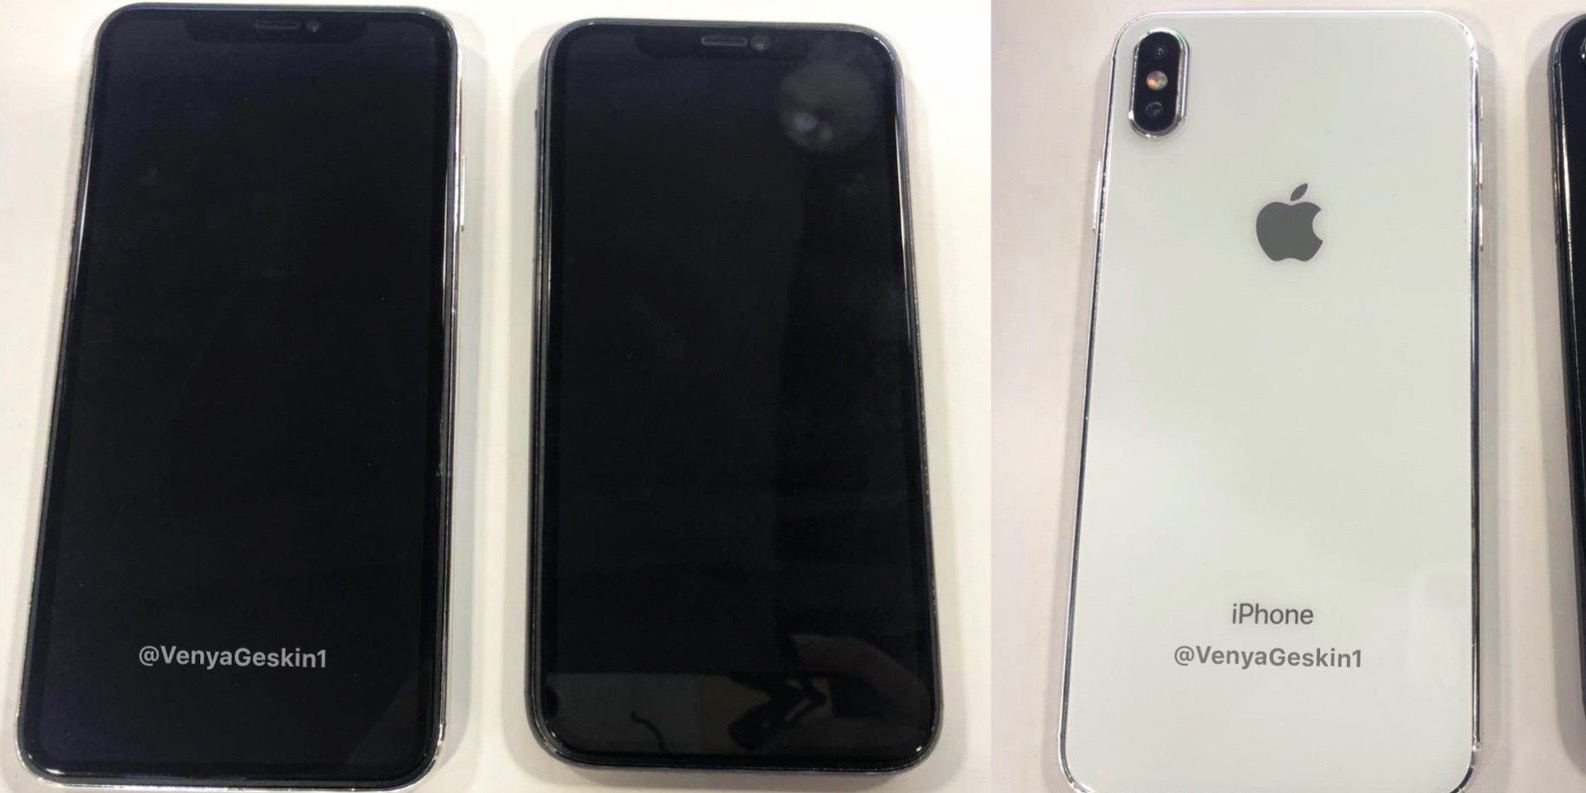 new product ffda9 96bee Leaked images claim to show iPhone X Plus & 6.1-inch LCD iPhone ...